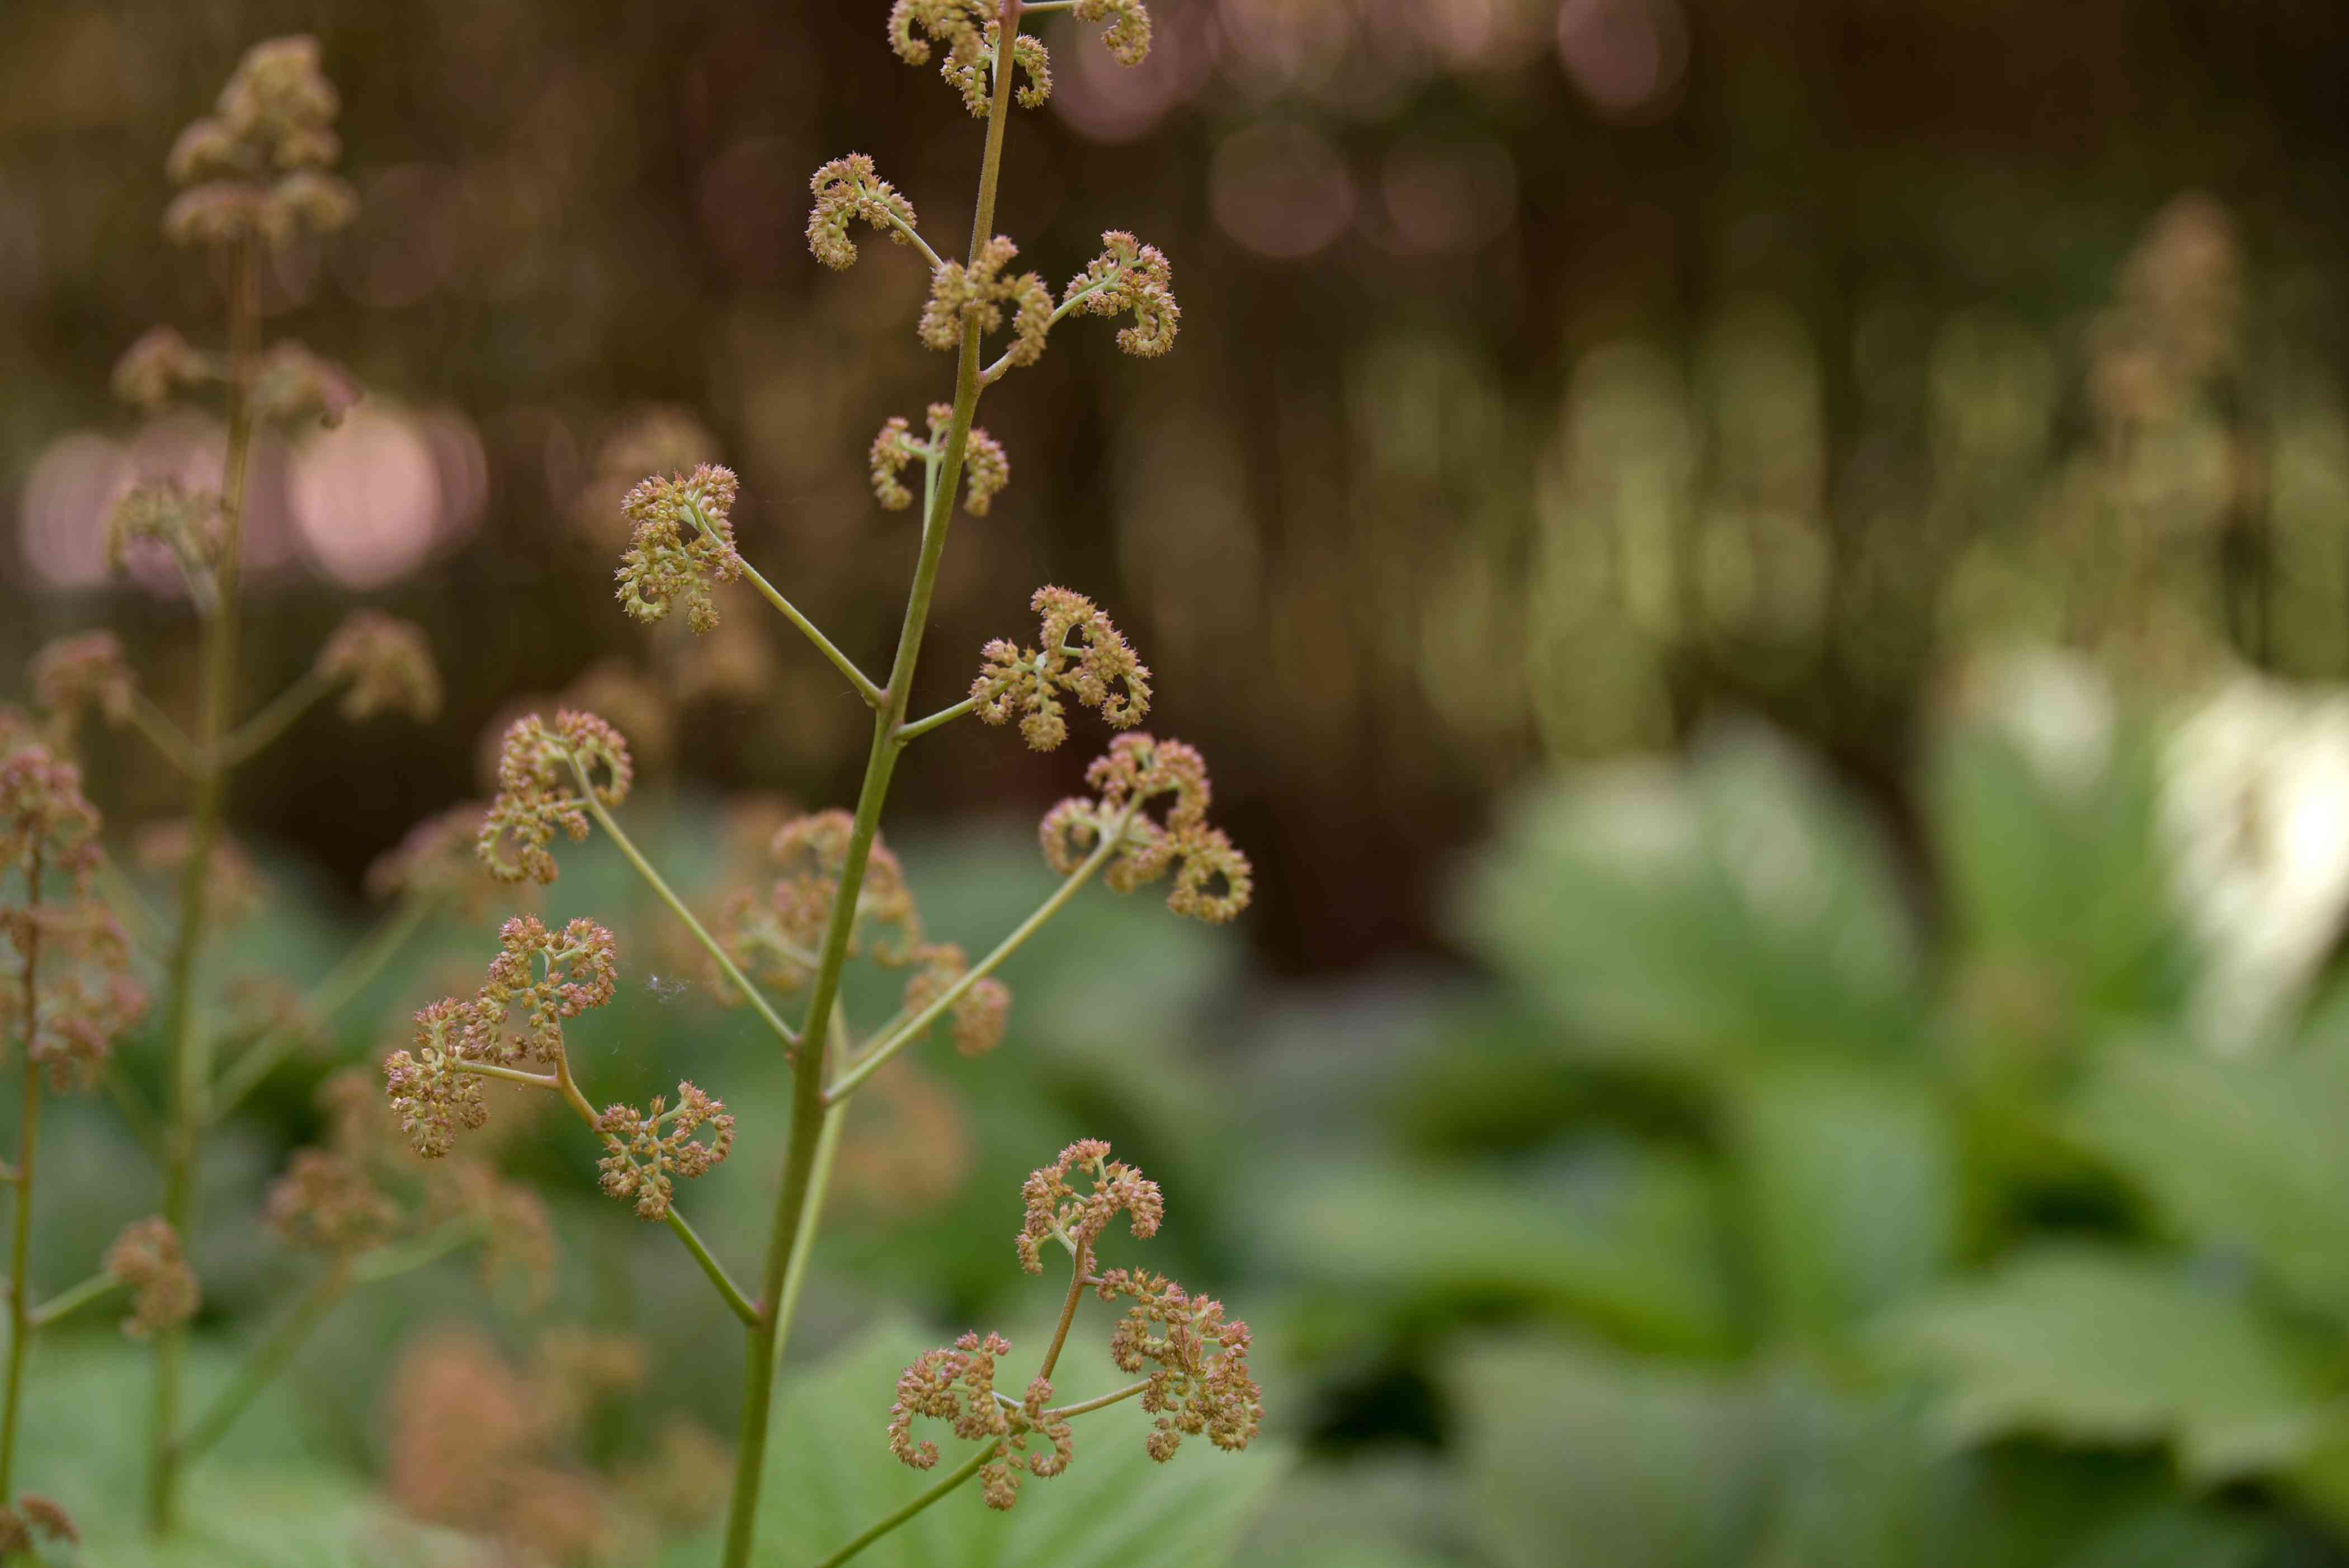 Reddish-brown tinges on thin stem of Rodgers flowers closeup